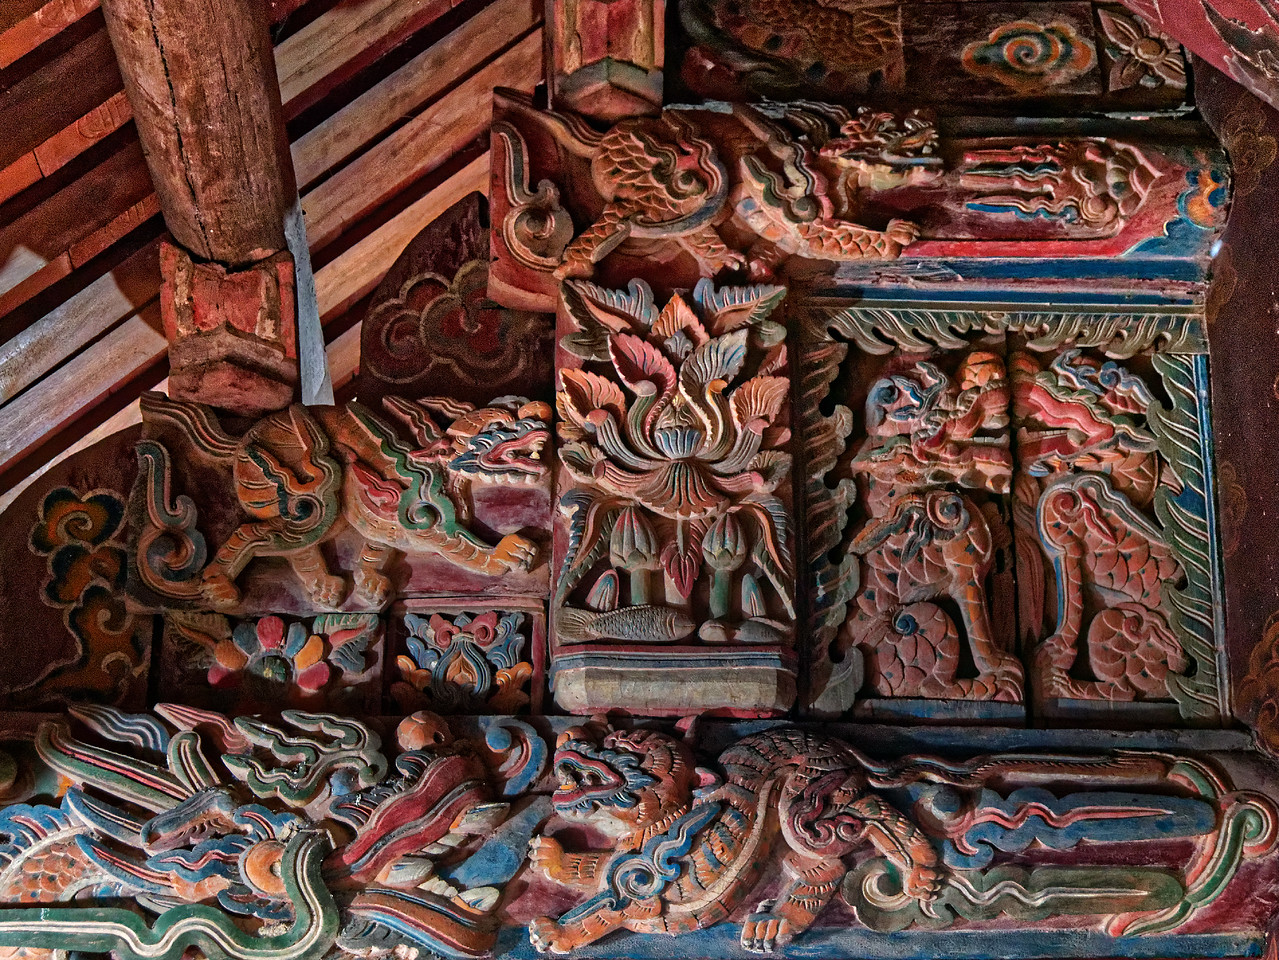 Elaborately carved beam supporting the roof overhang of the temple building